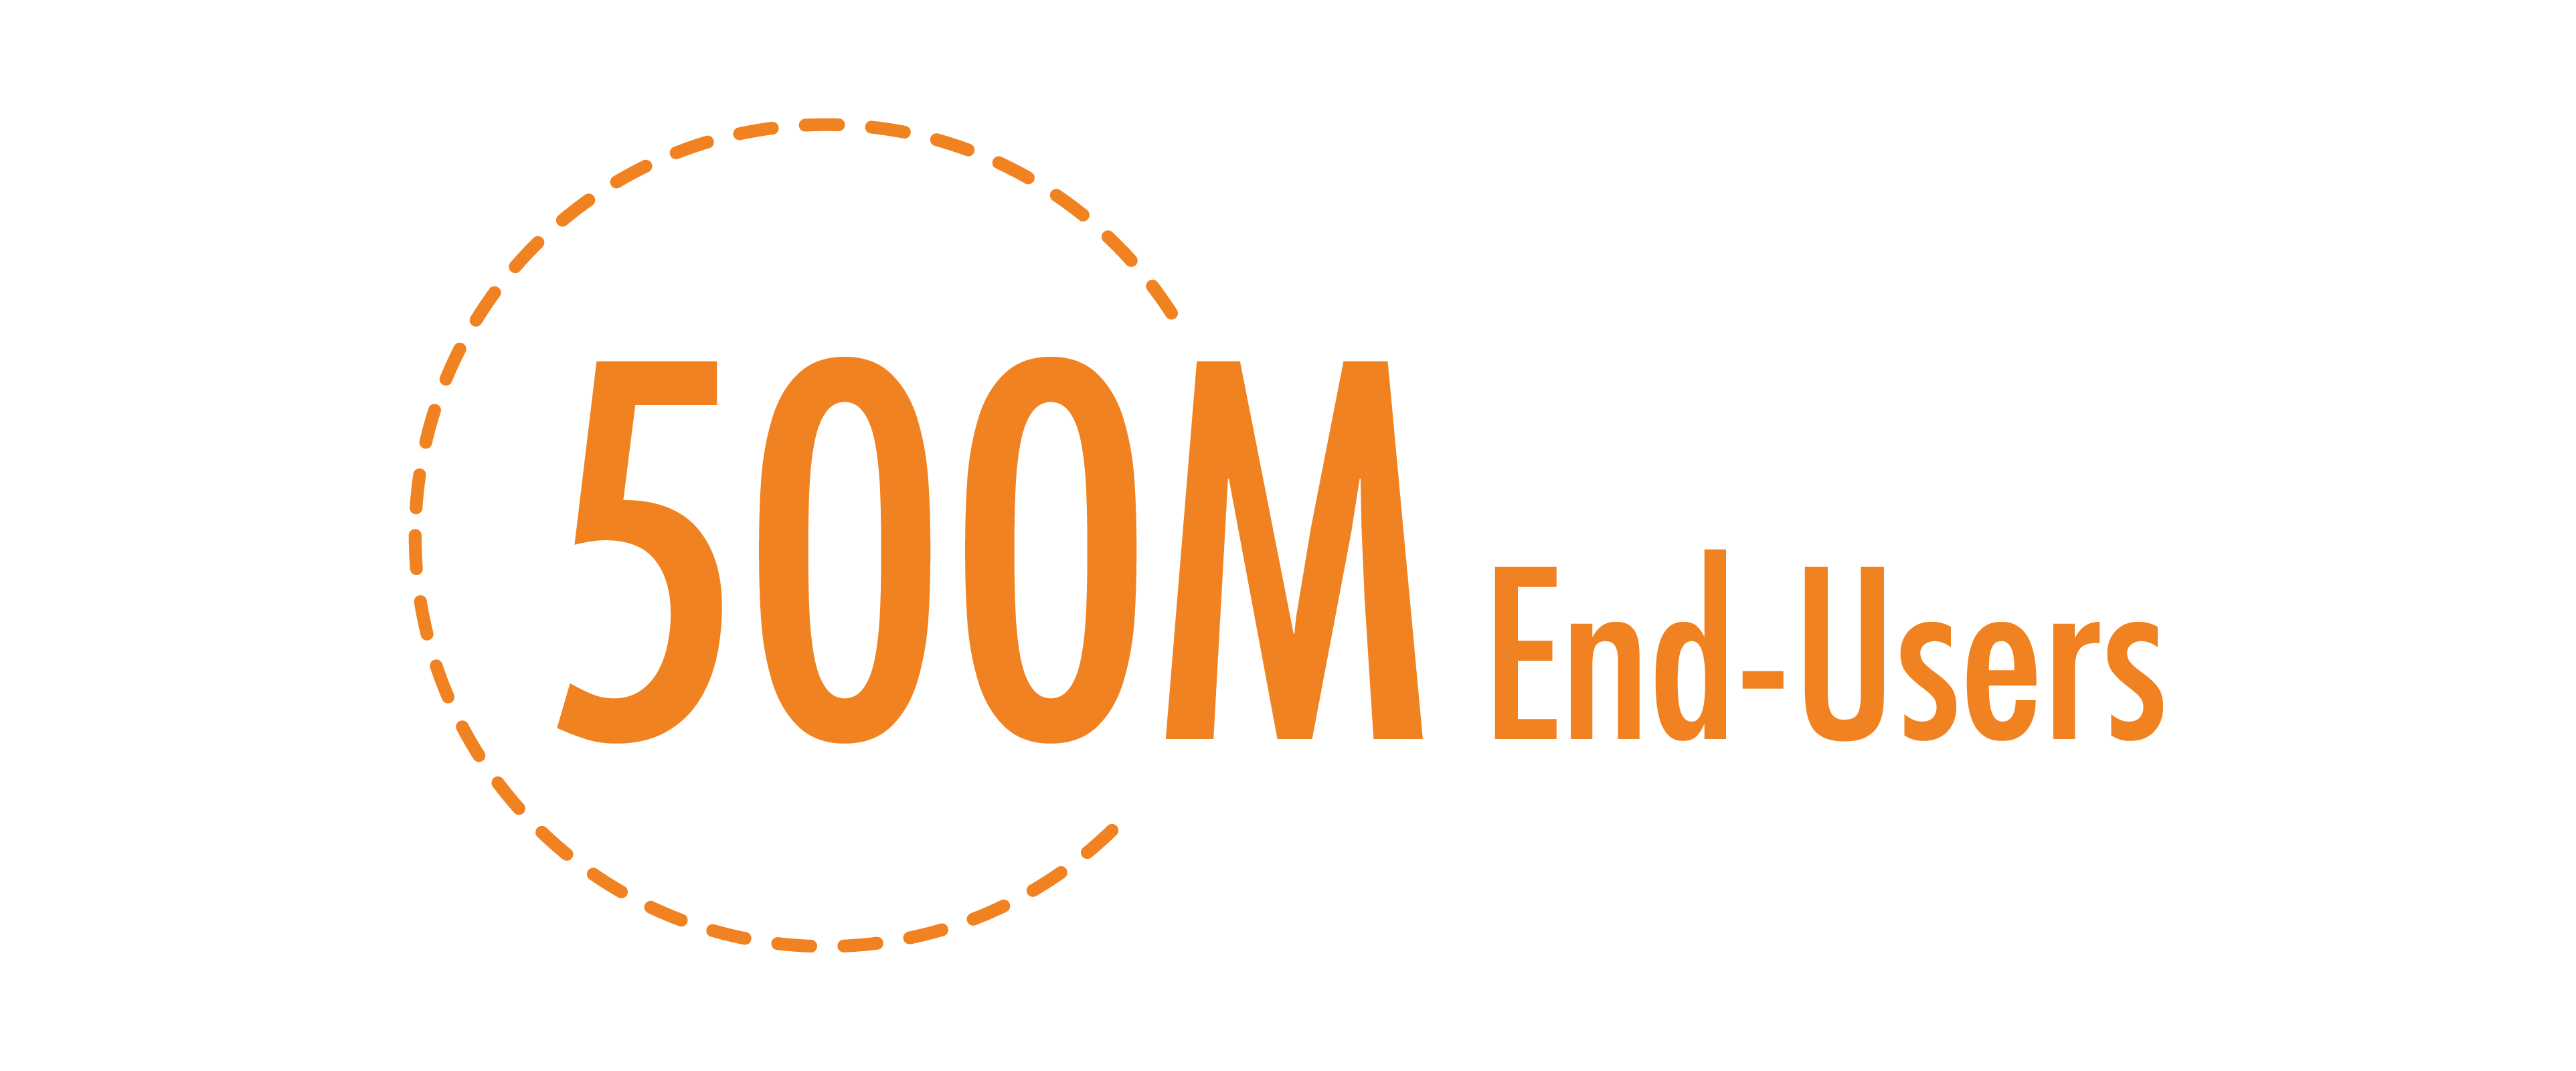 number of end users 500 million